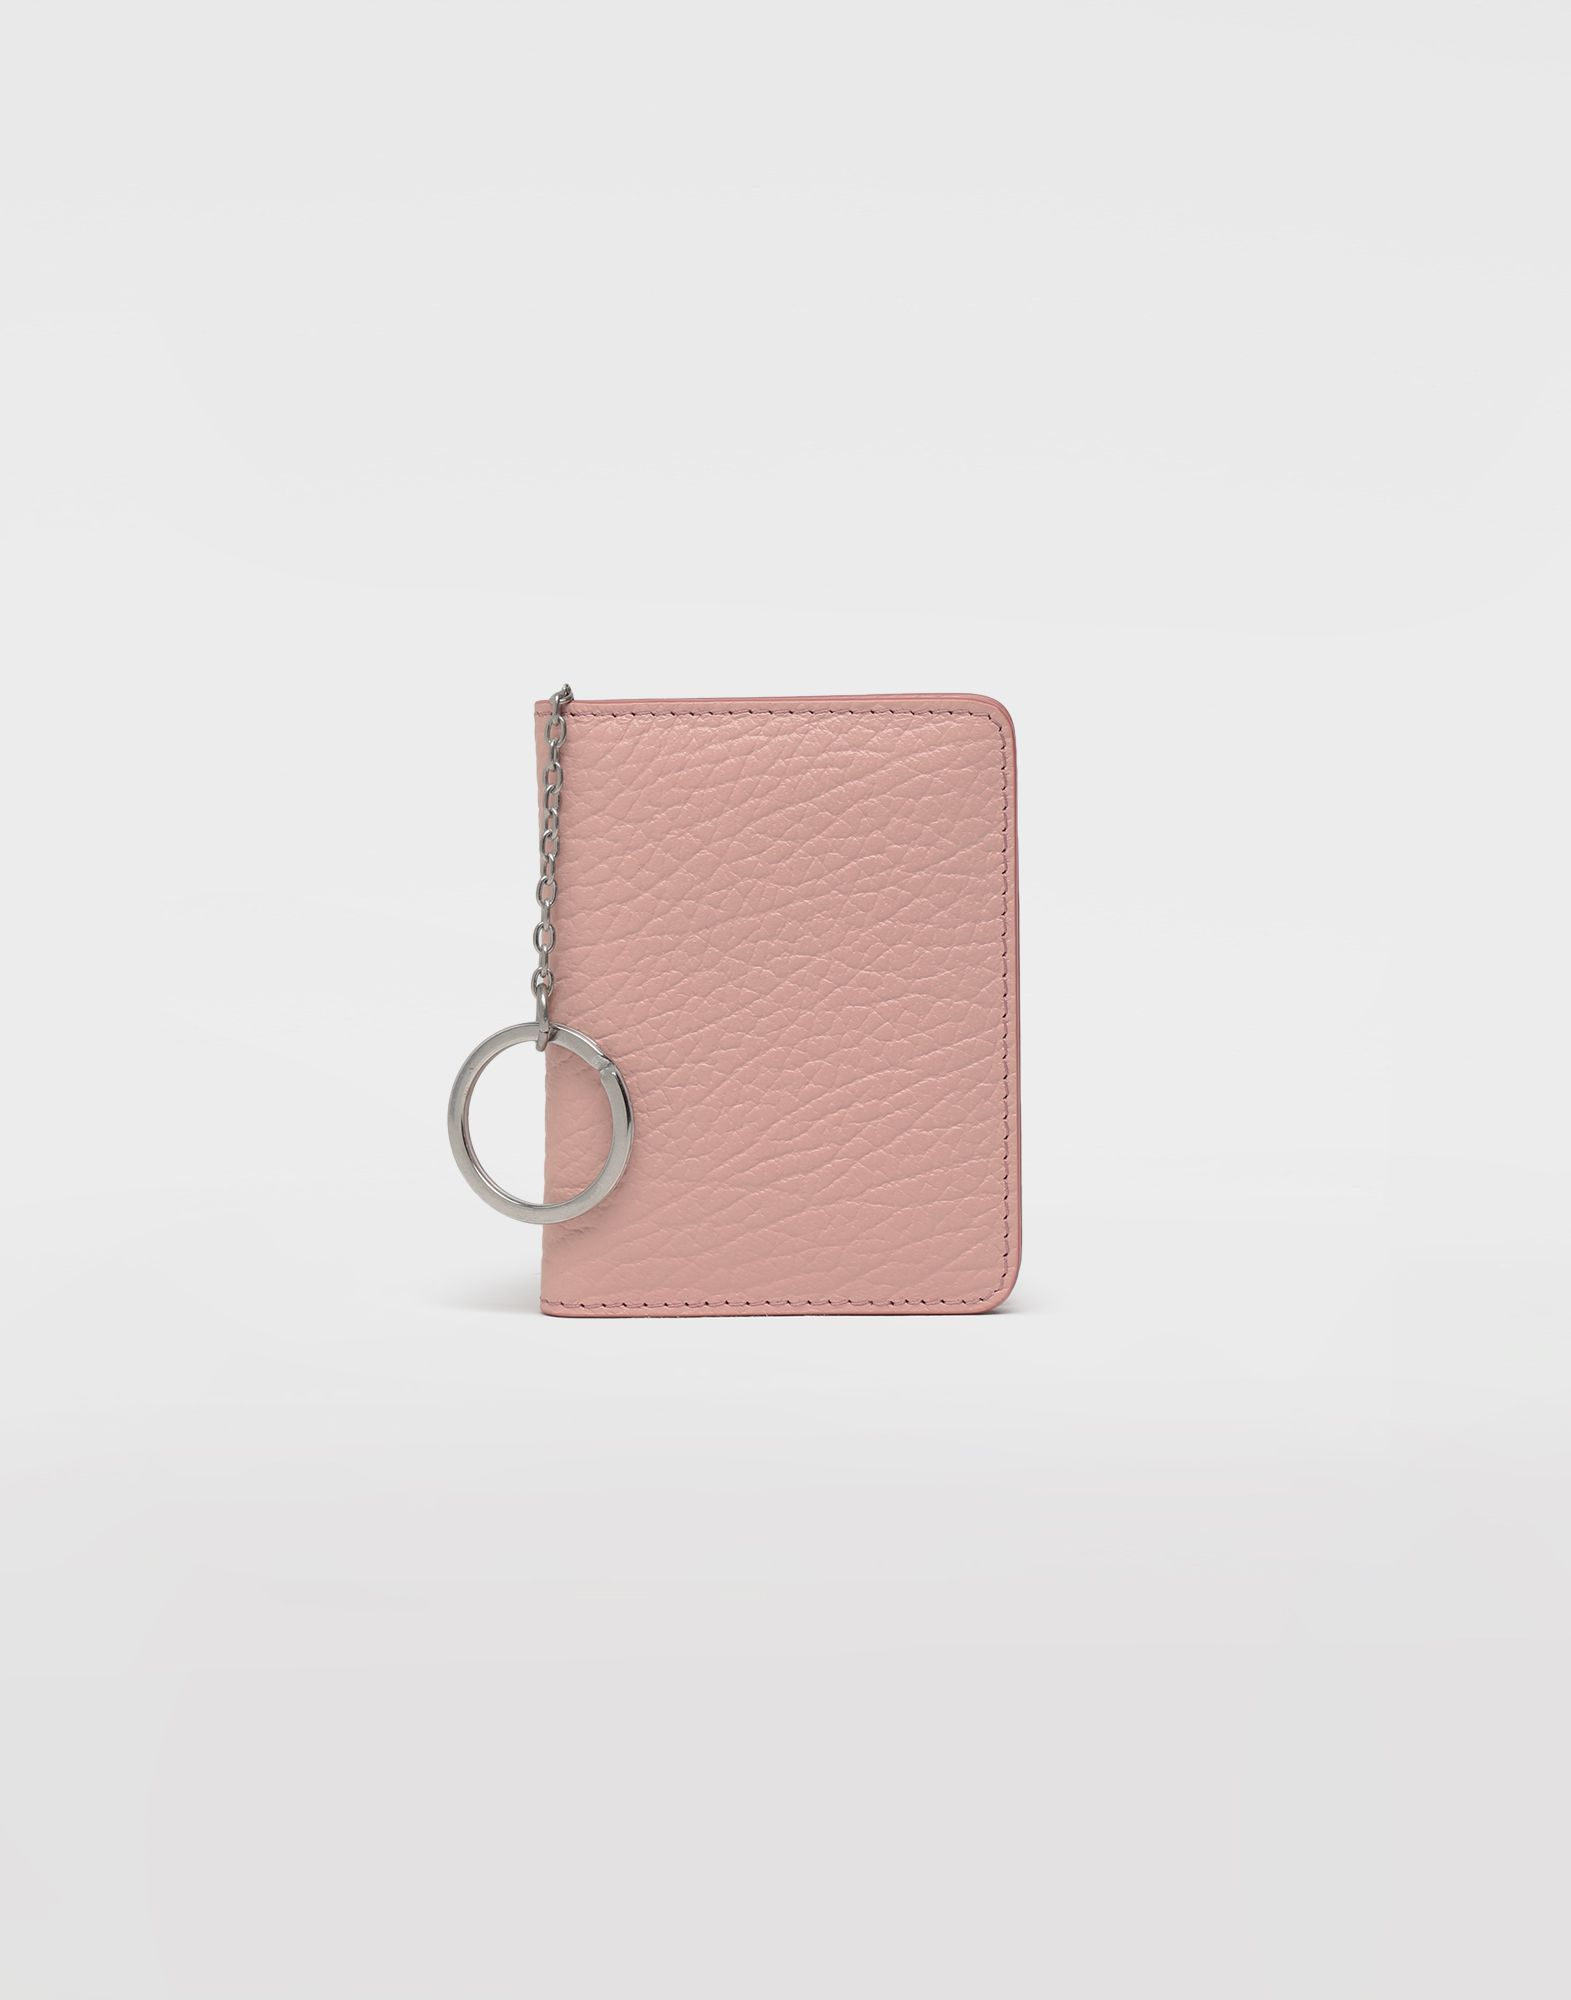 MAISON MARGIELA Leather keyring small wallet Wallets Woman f